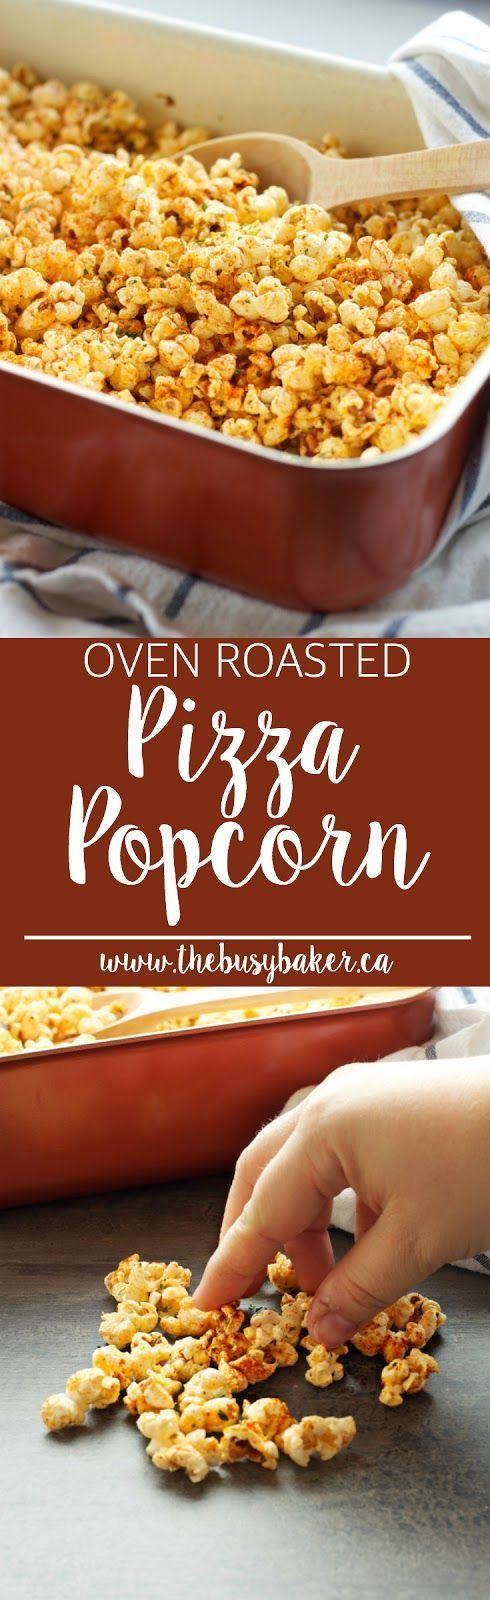 This Oven Roasted Pizza Popcorn is SO flavourful and easy to make! Makes a great edible gift! Recipe from http://www.thebusybaker.ca